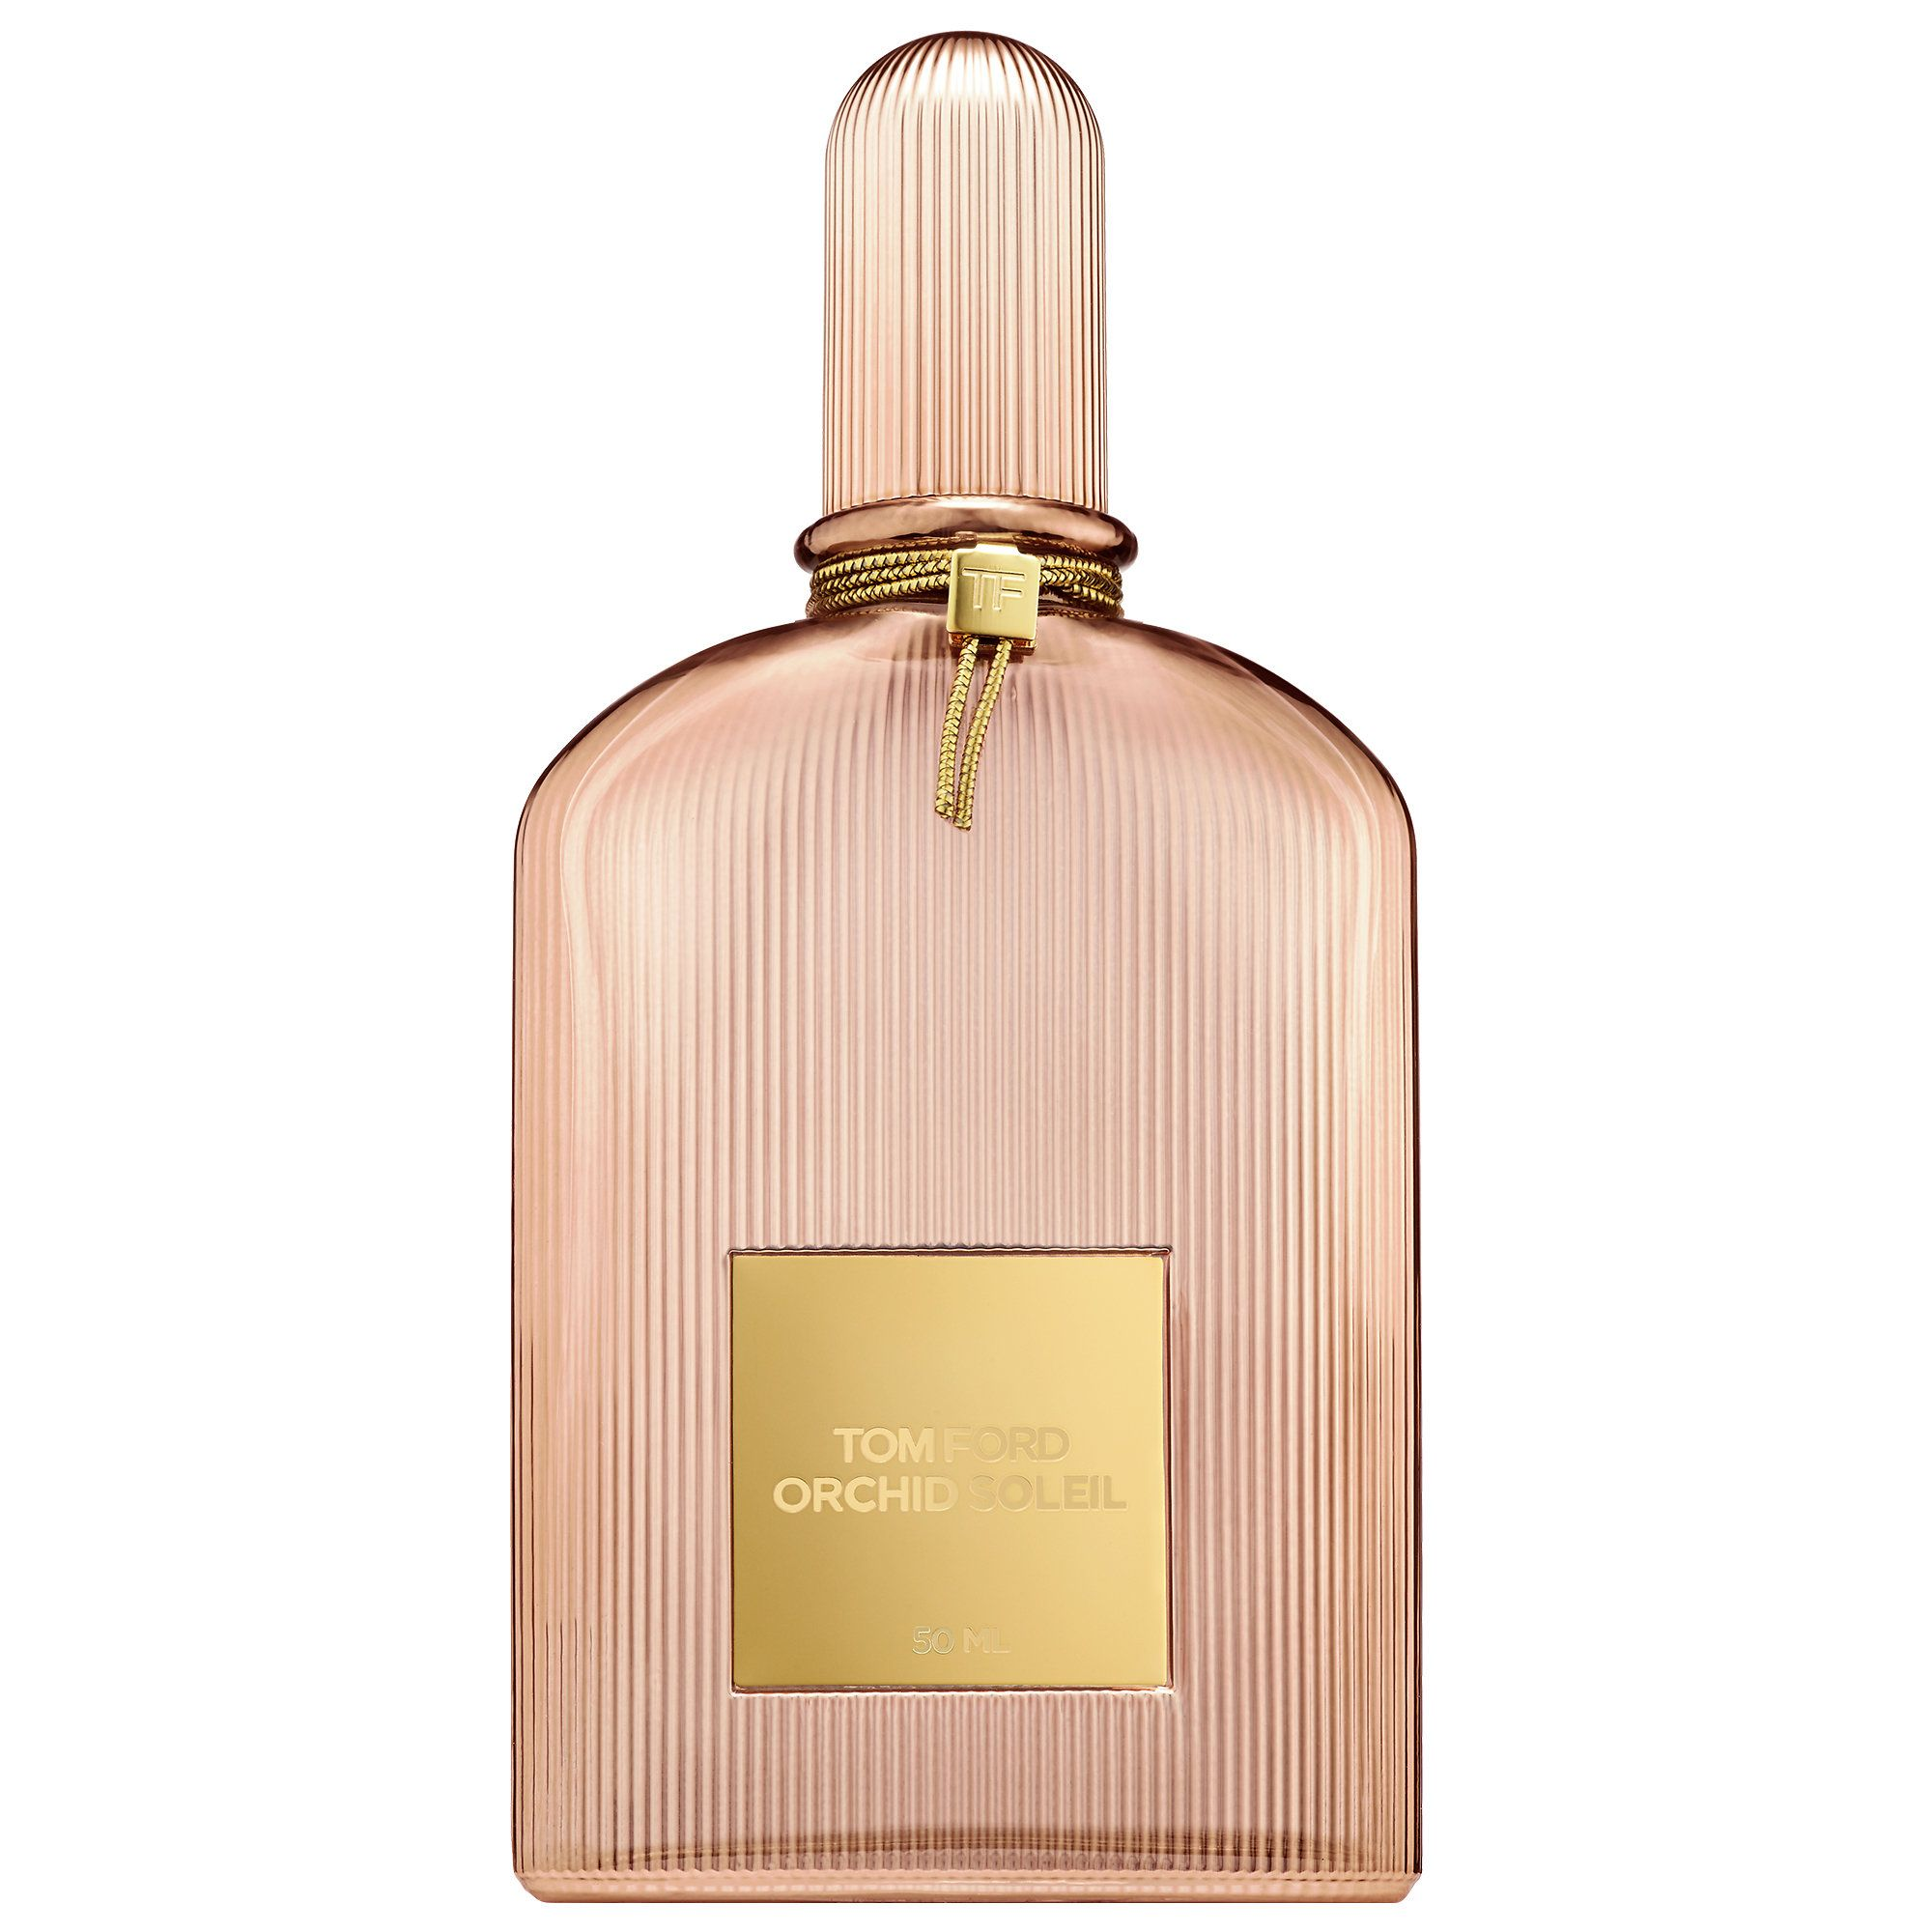 shop orchid soleil by tom ford at sephora this scent. Black Bedroom Furniture Sets. Home Design Ideas